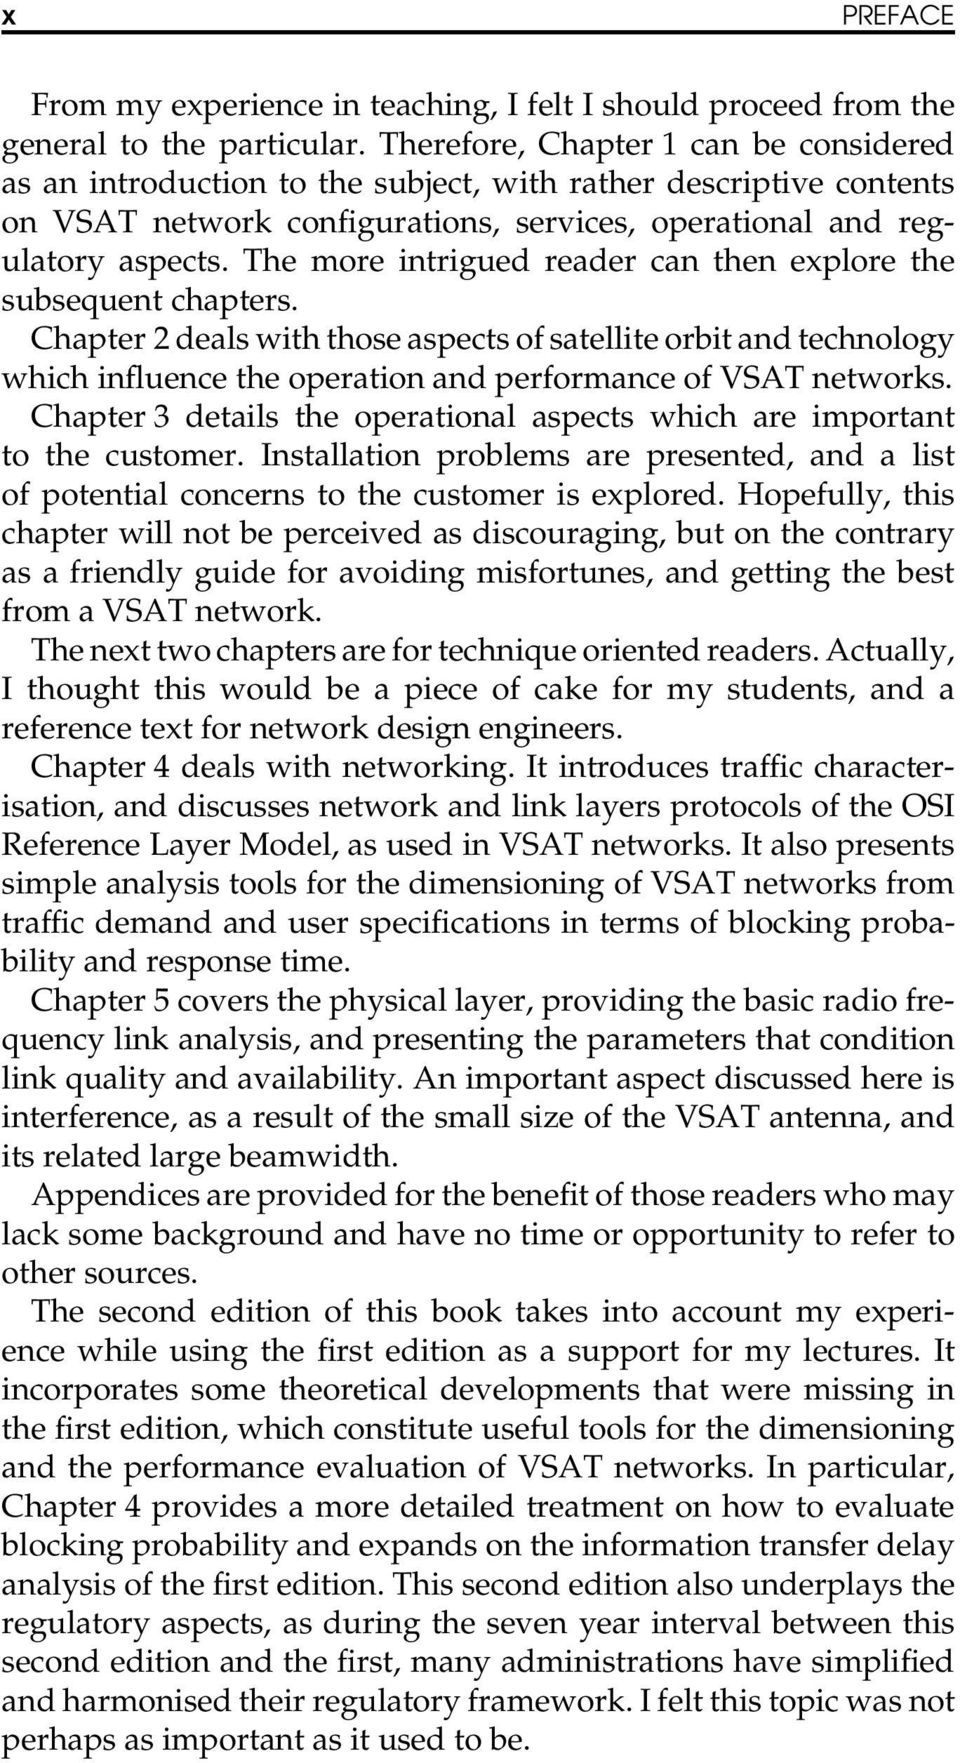 The more intrigued reader can then explore the subsequent chapters. Chapter 2 deals with those aspects of satellite orbit and technology which influence the operation and performance of VSAT networks.